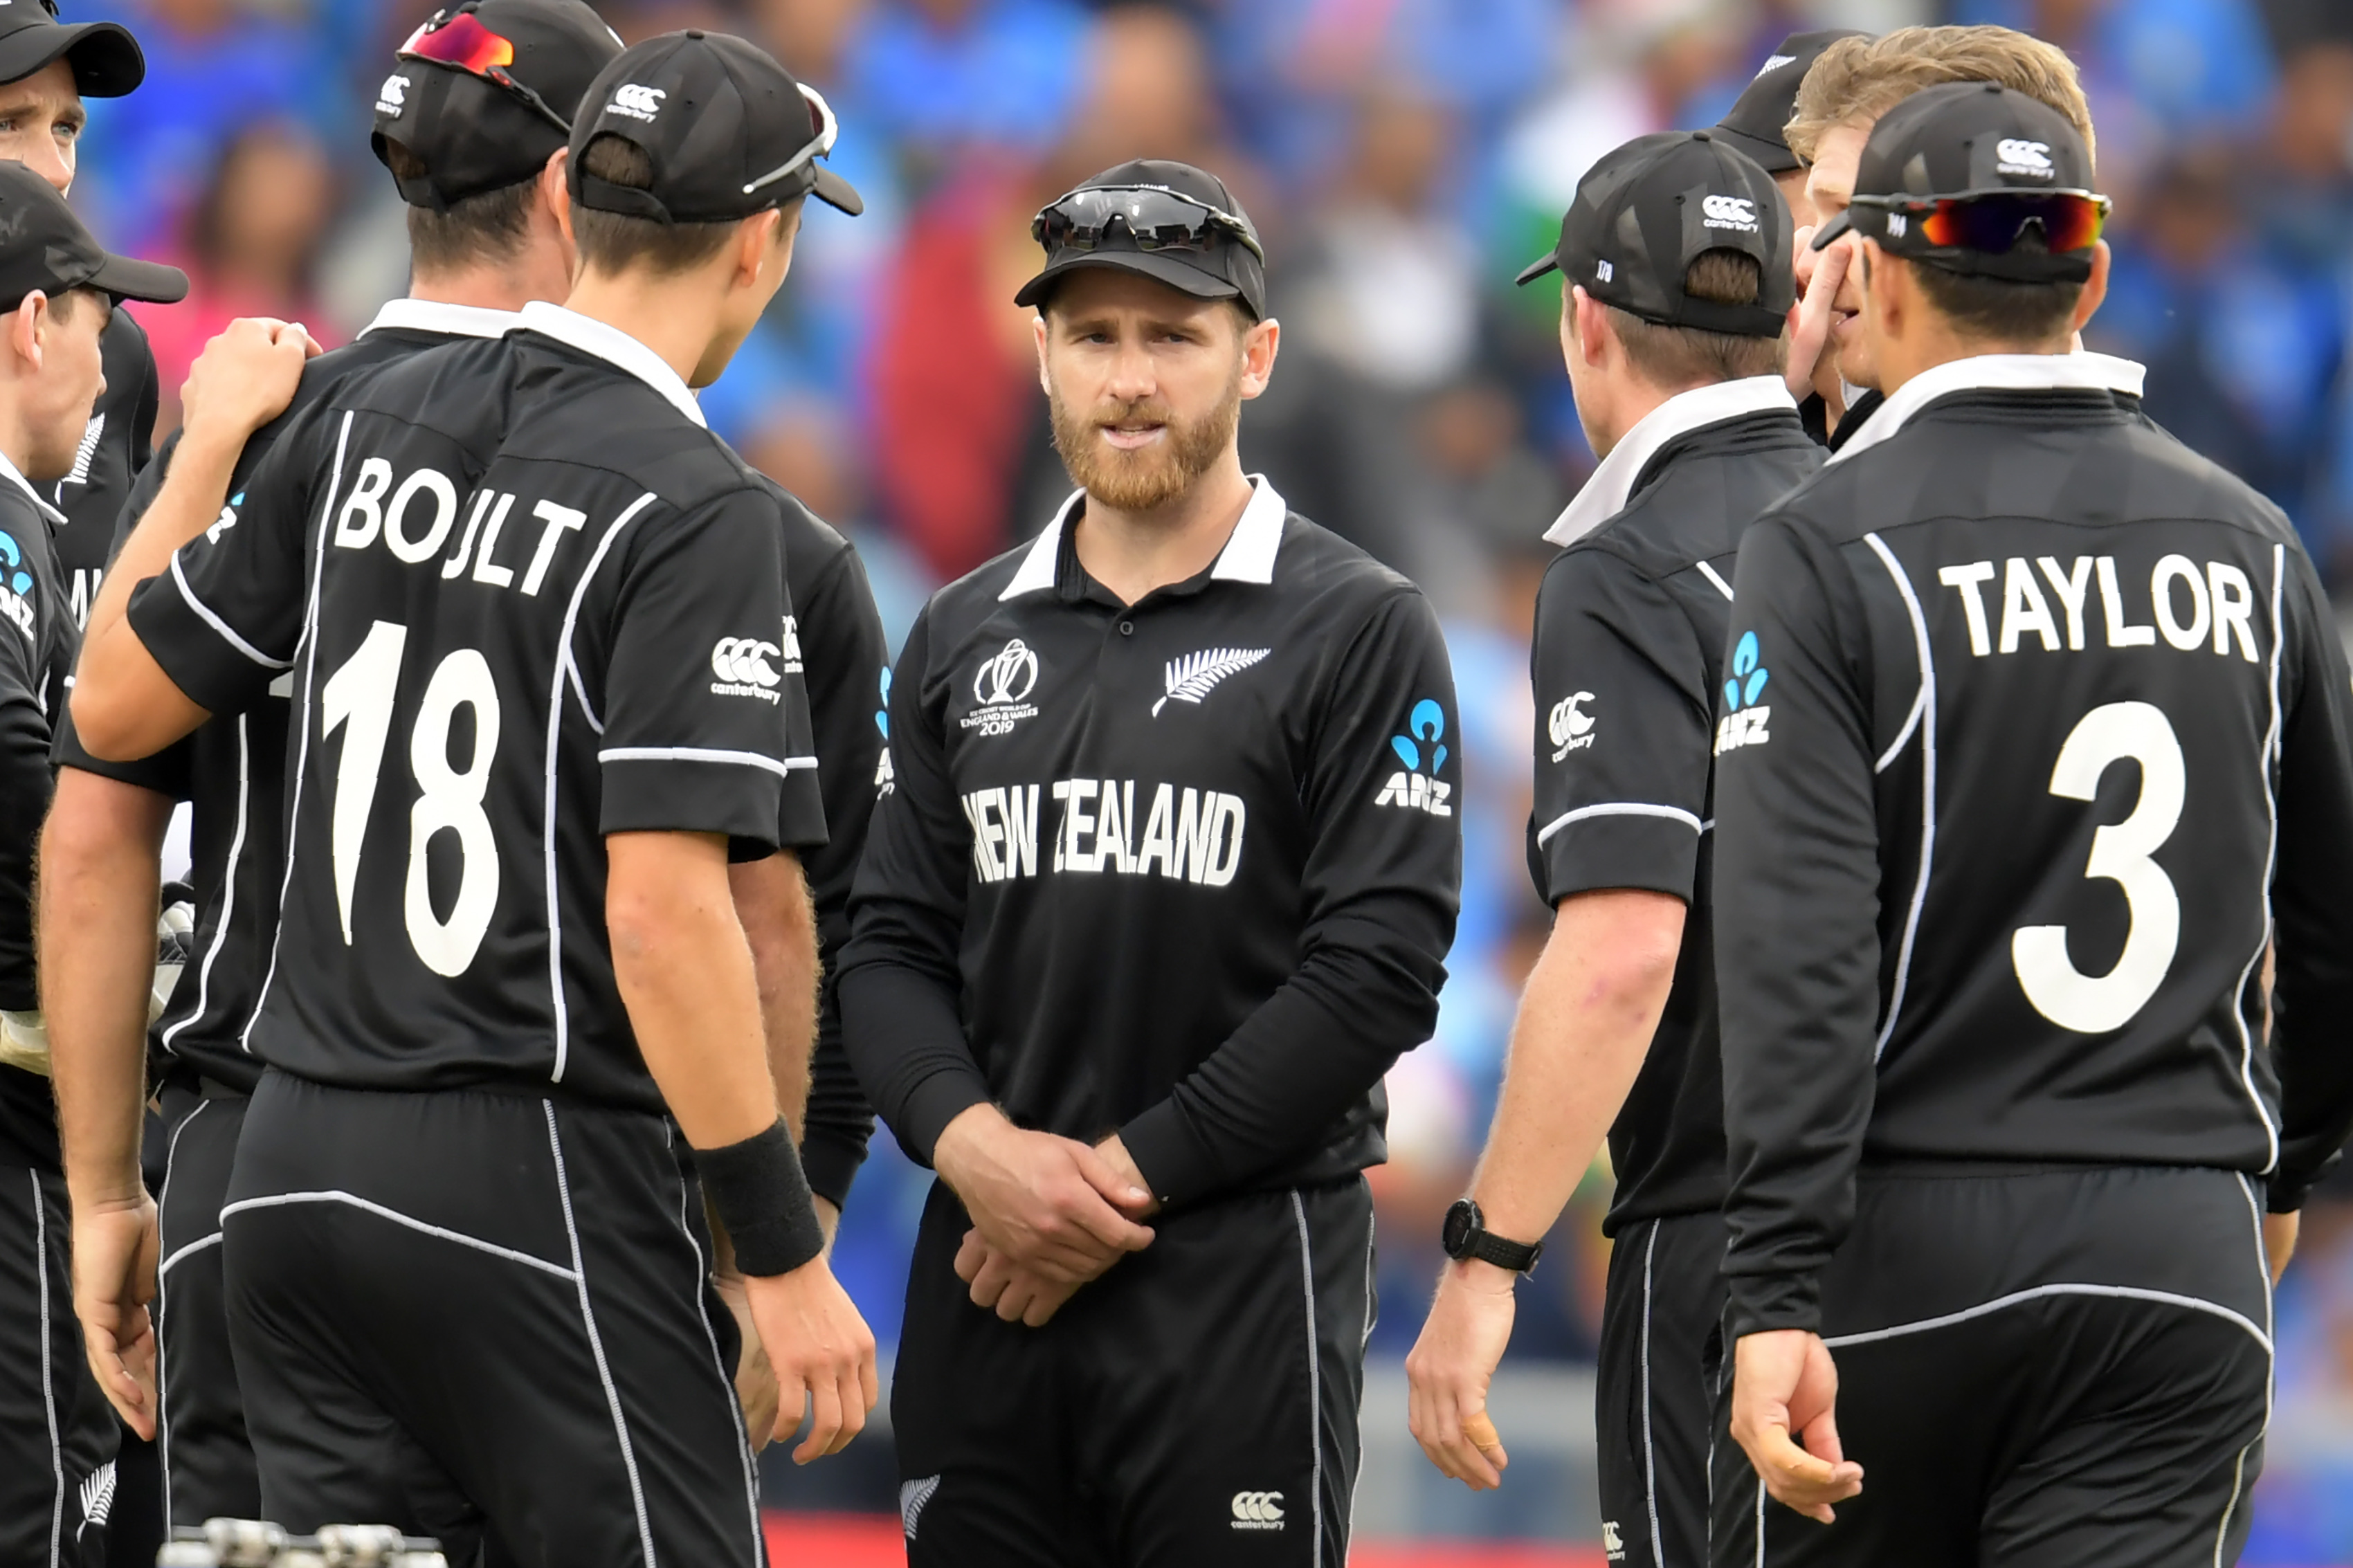 ICC Cricket World Cup 2019 final: New Zealand opt to bat against England